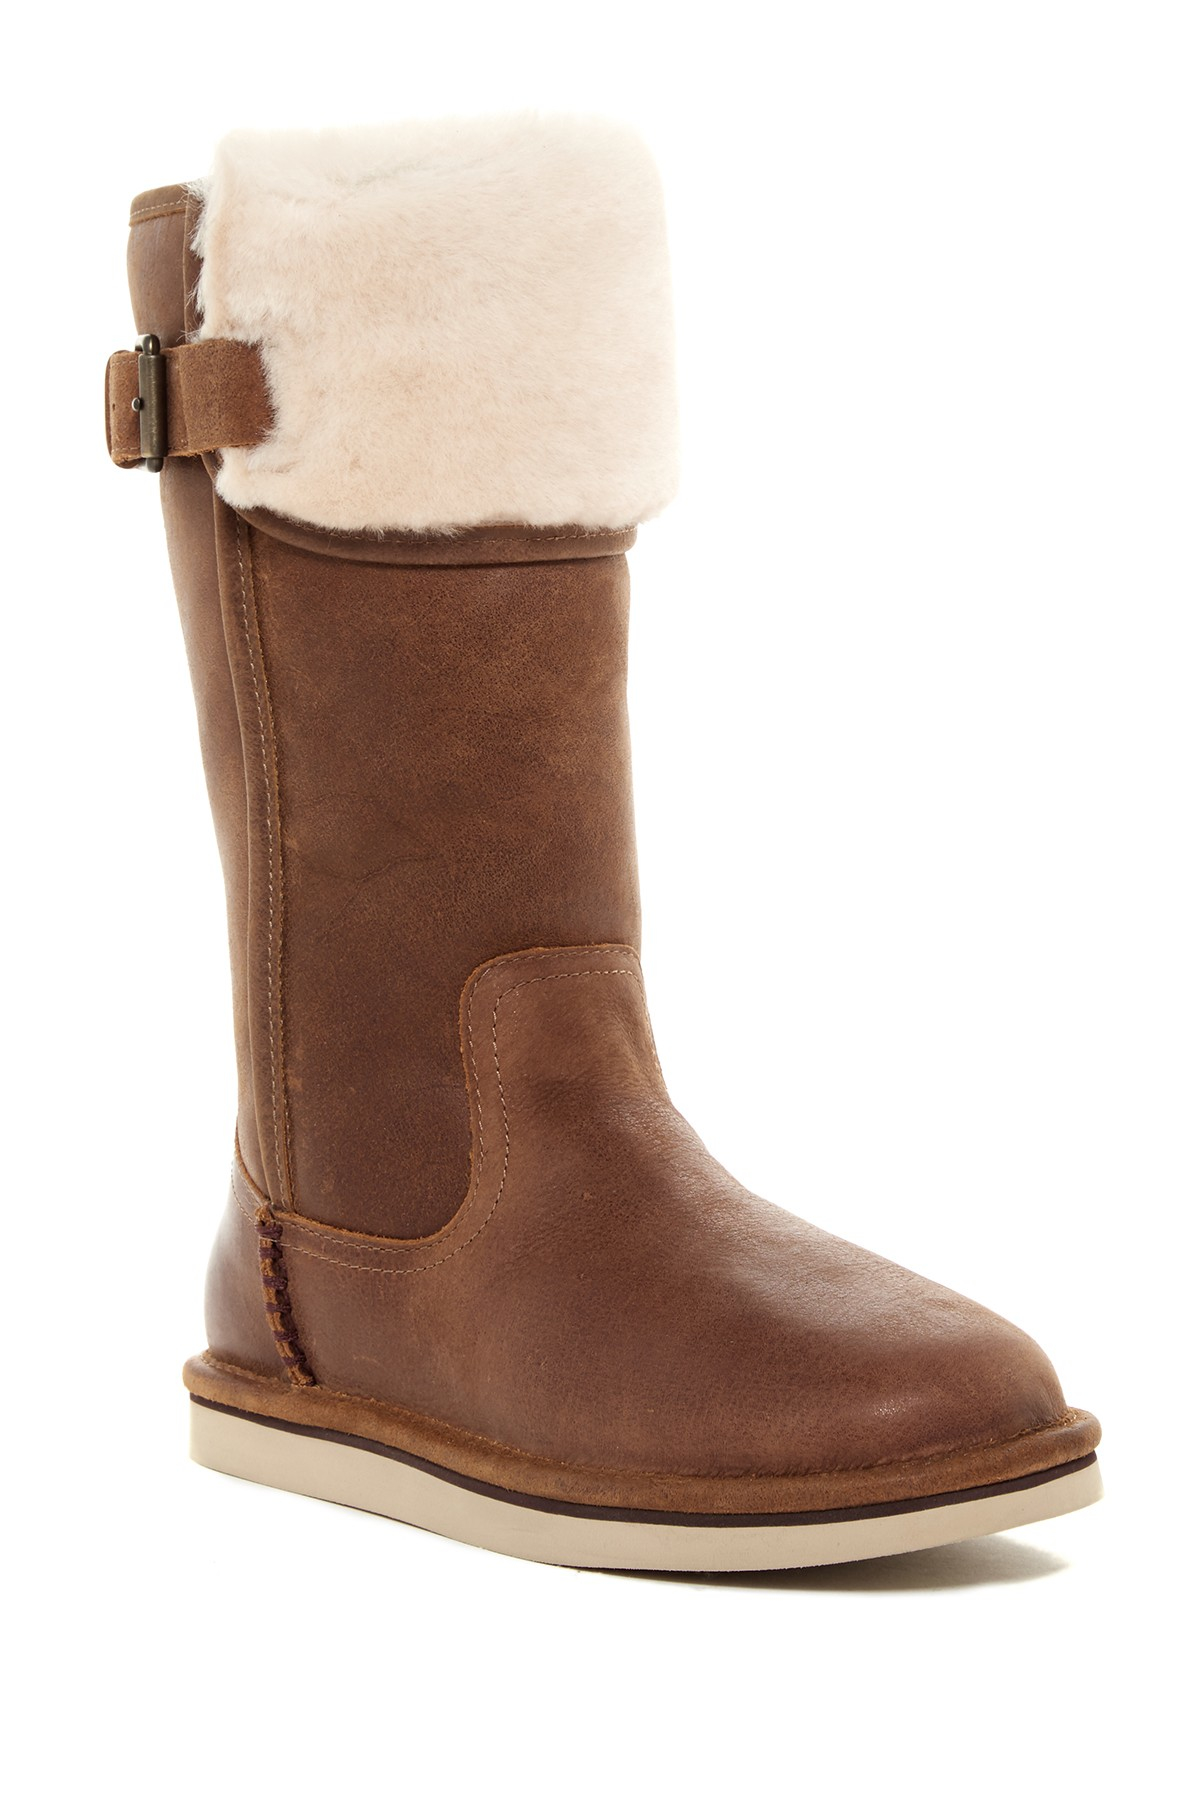 real ugg boots uk sale